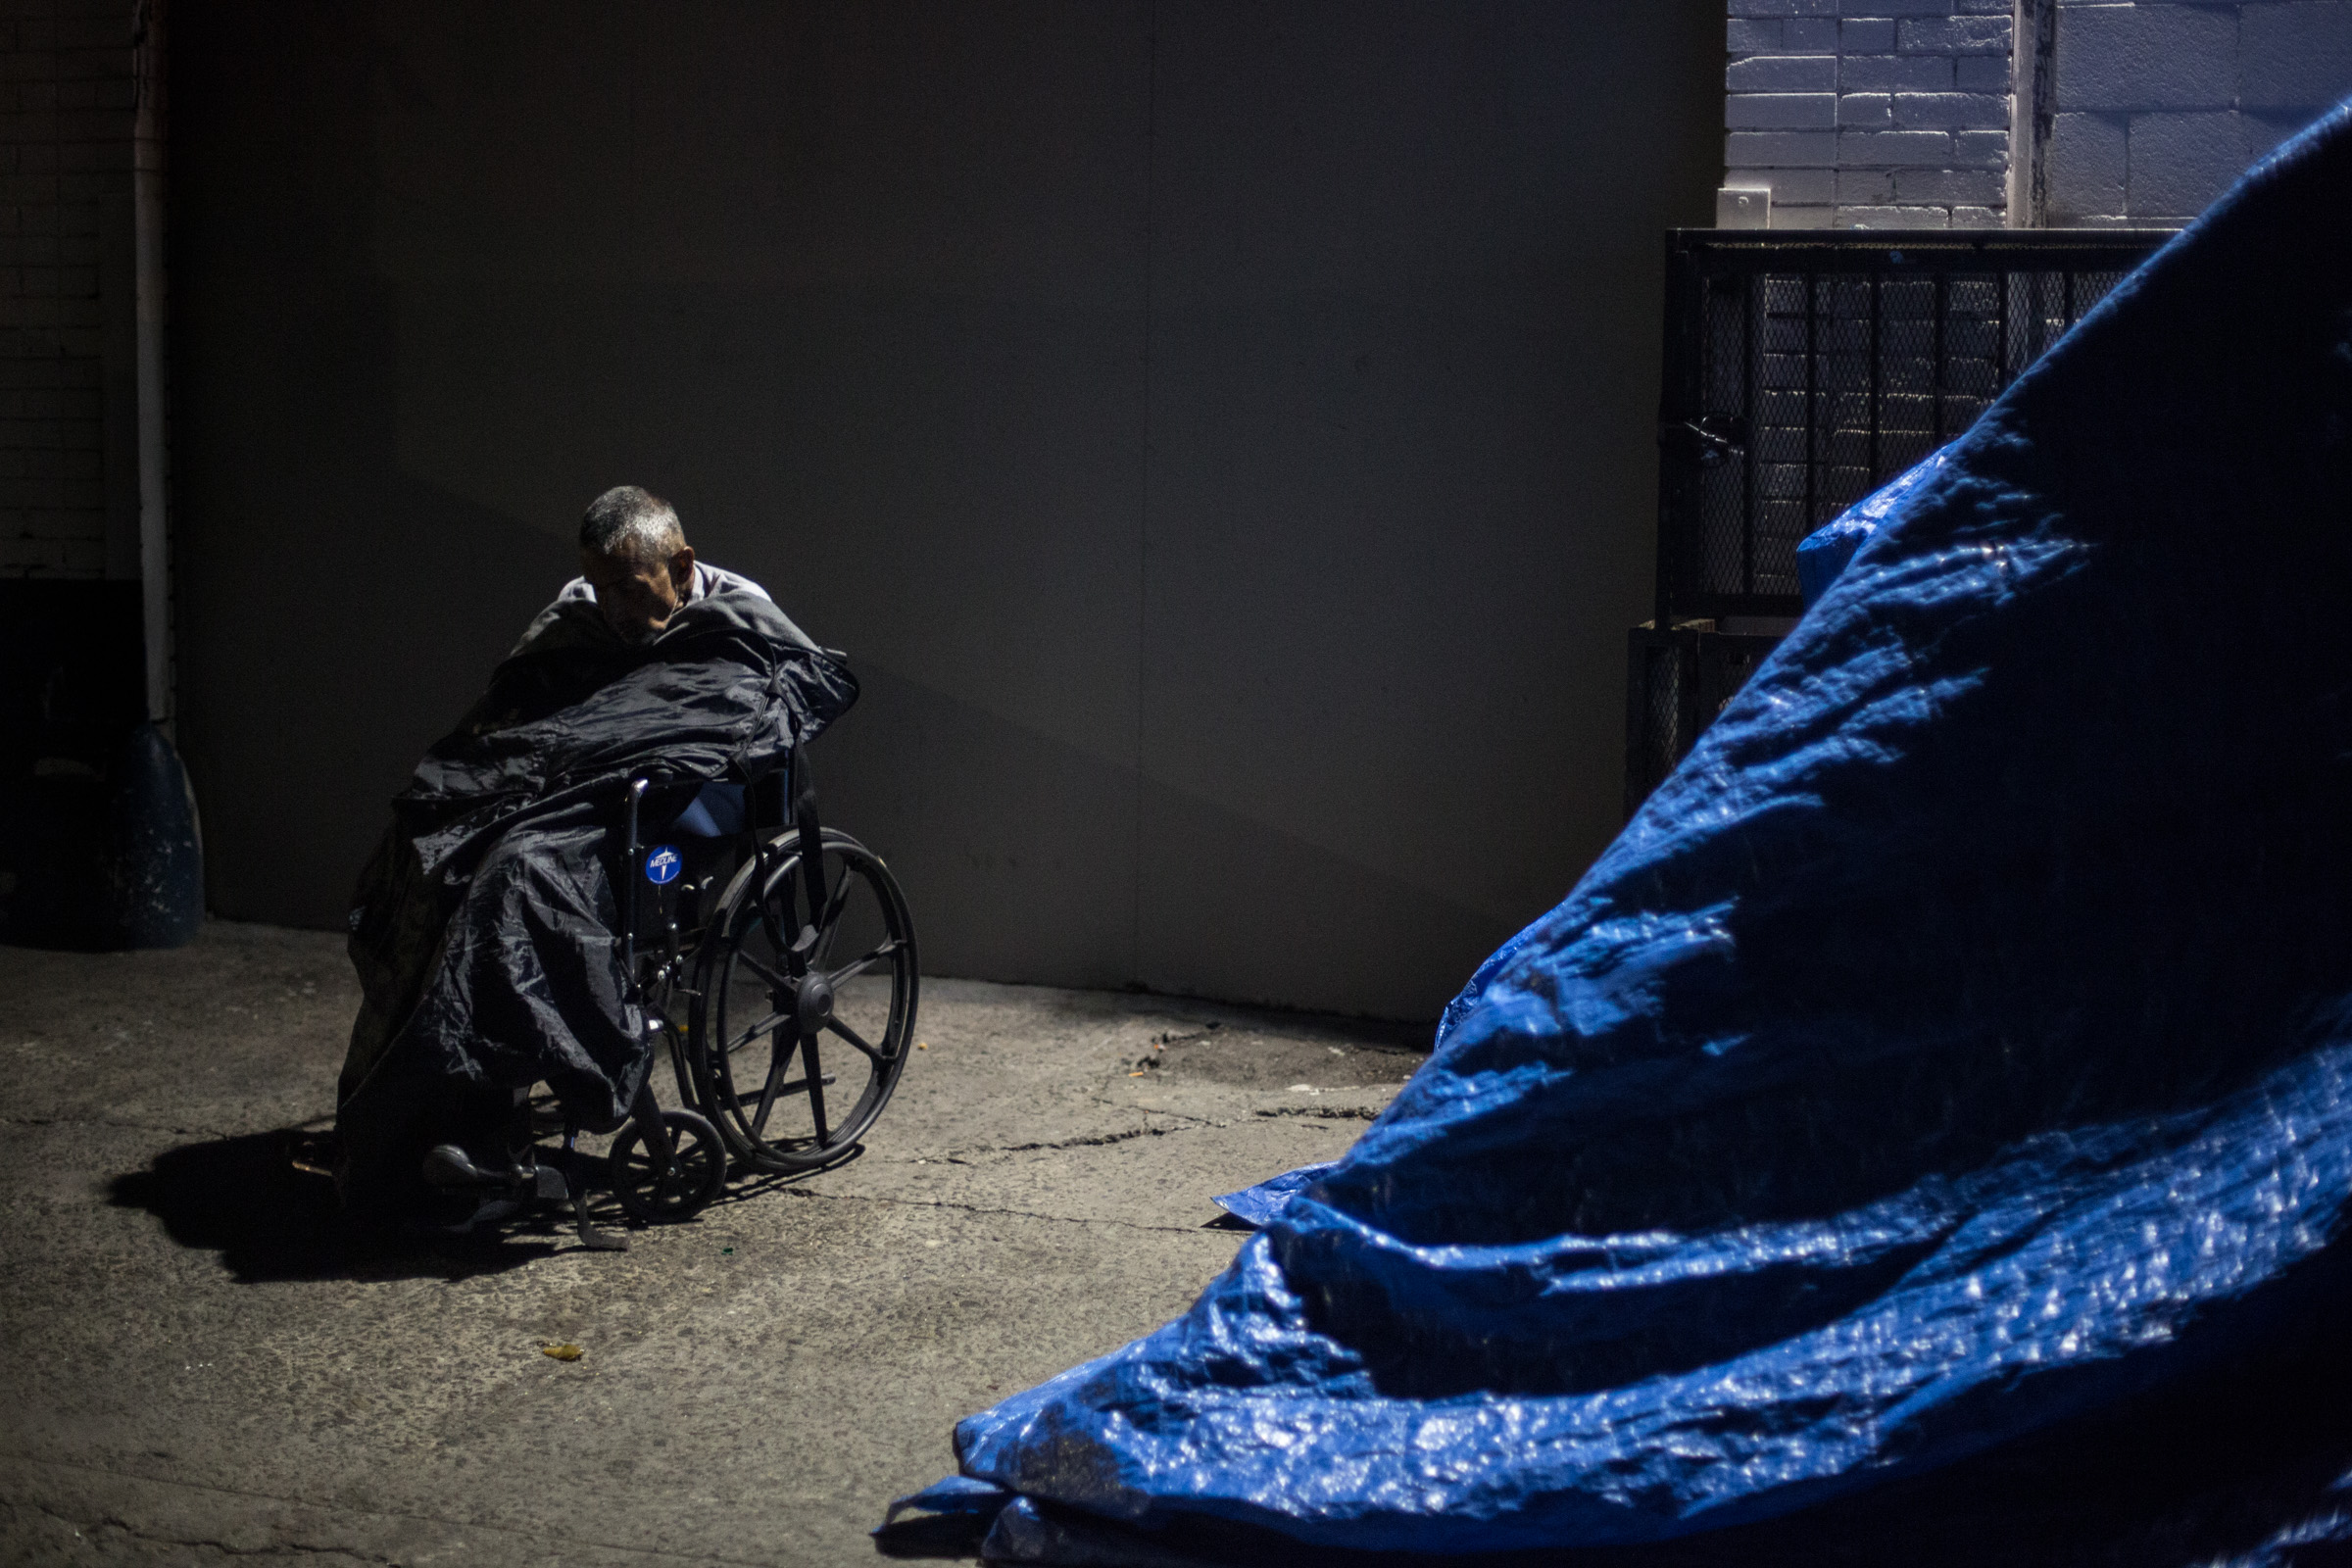 Beneath a street light on Skid Row, an elderly man dozes off under a sleeping bag in Los Angeles, California. Next to him is a large tent made of blue tarp and found material. Apr. 2, 2017 (Staff Photographer Zin Chiang)